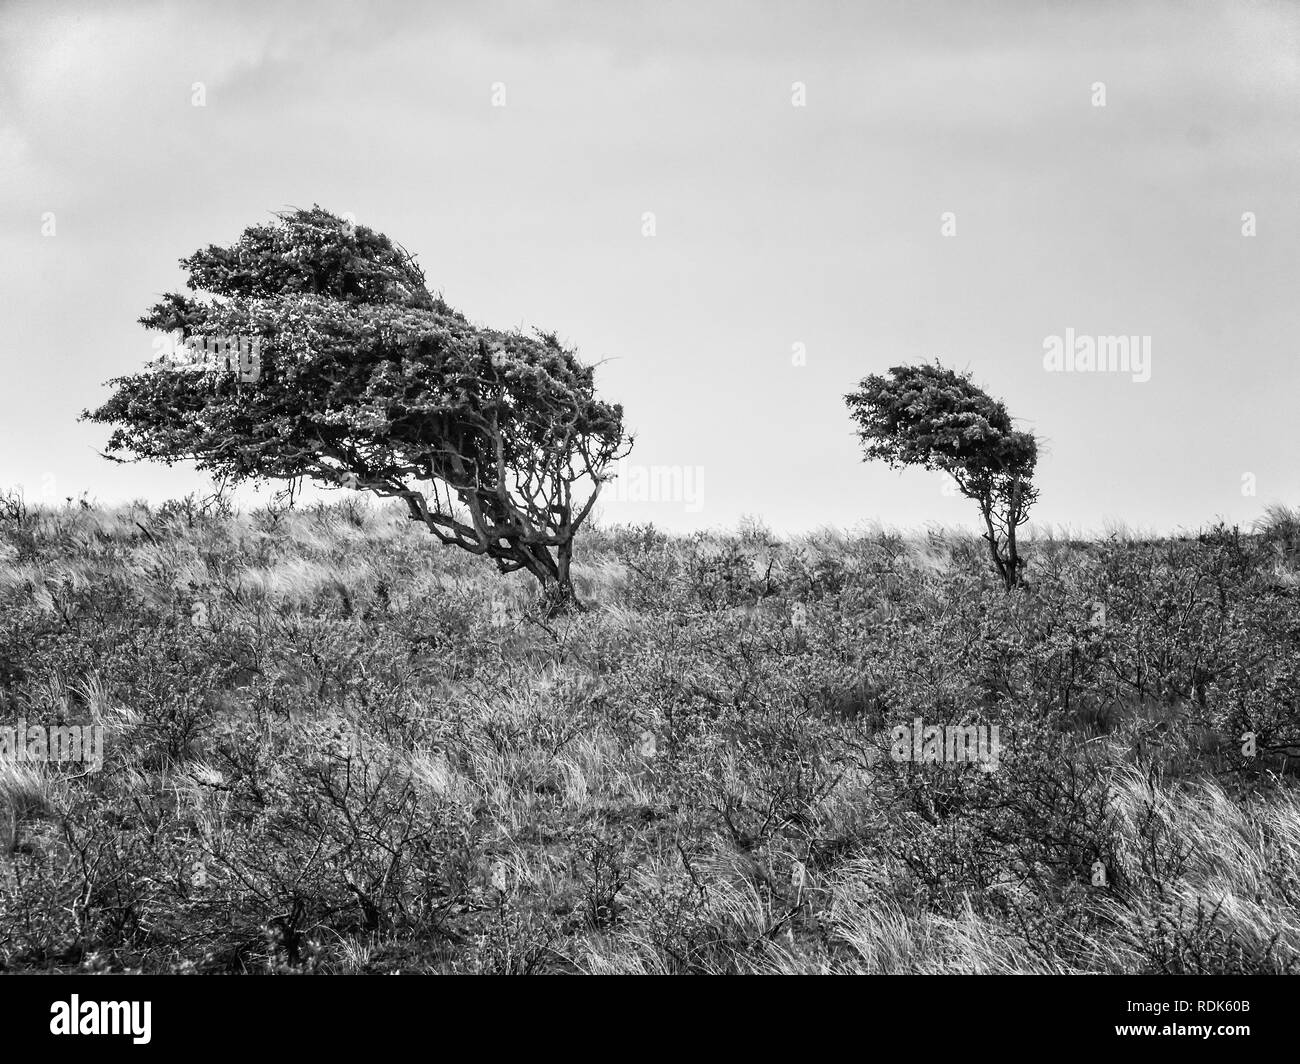 Two hawthorne bushes in the dunes of district Waterleidingduinen near to the cities Zandvoort and Amsterdam in the Netherlands, monochrome - Stock Image